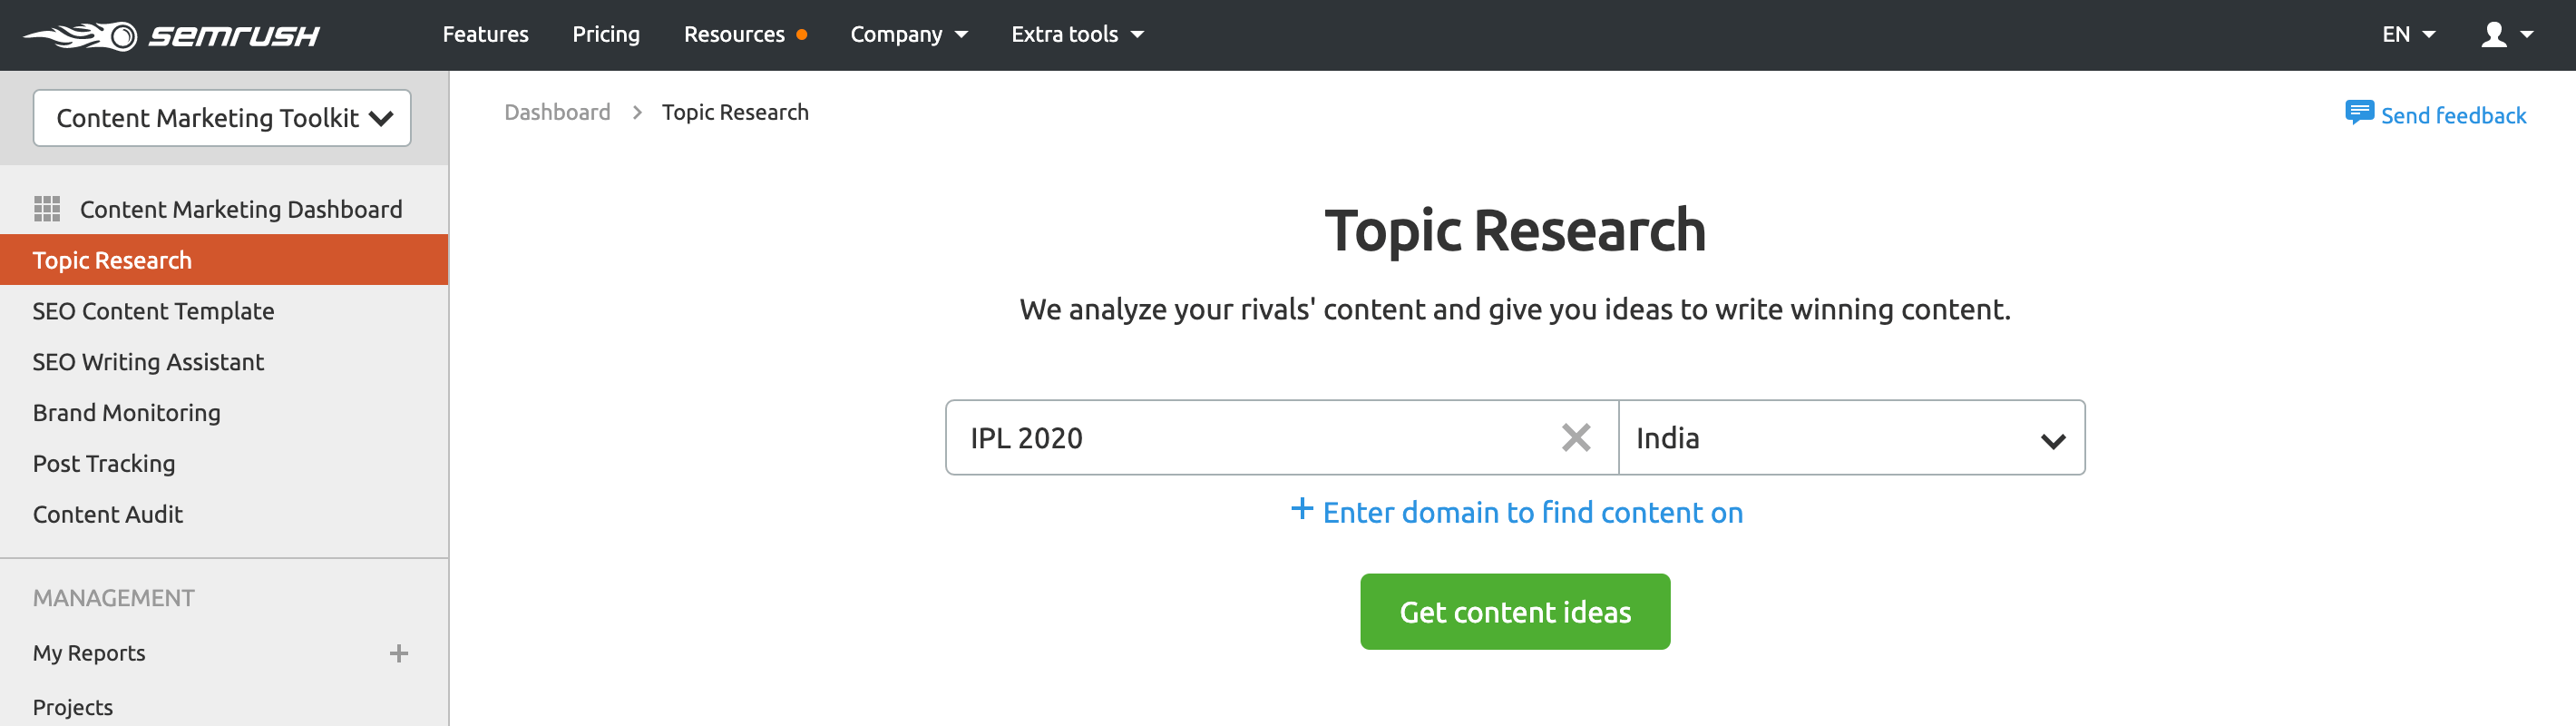 SEMrush Topic Research Get Content Ideas